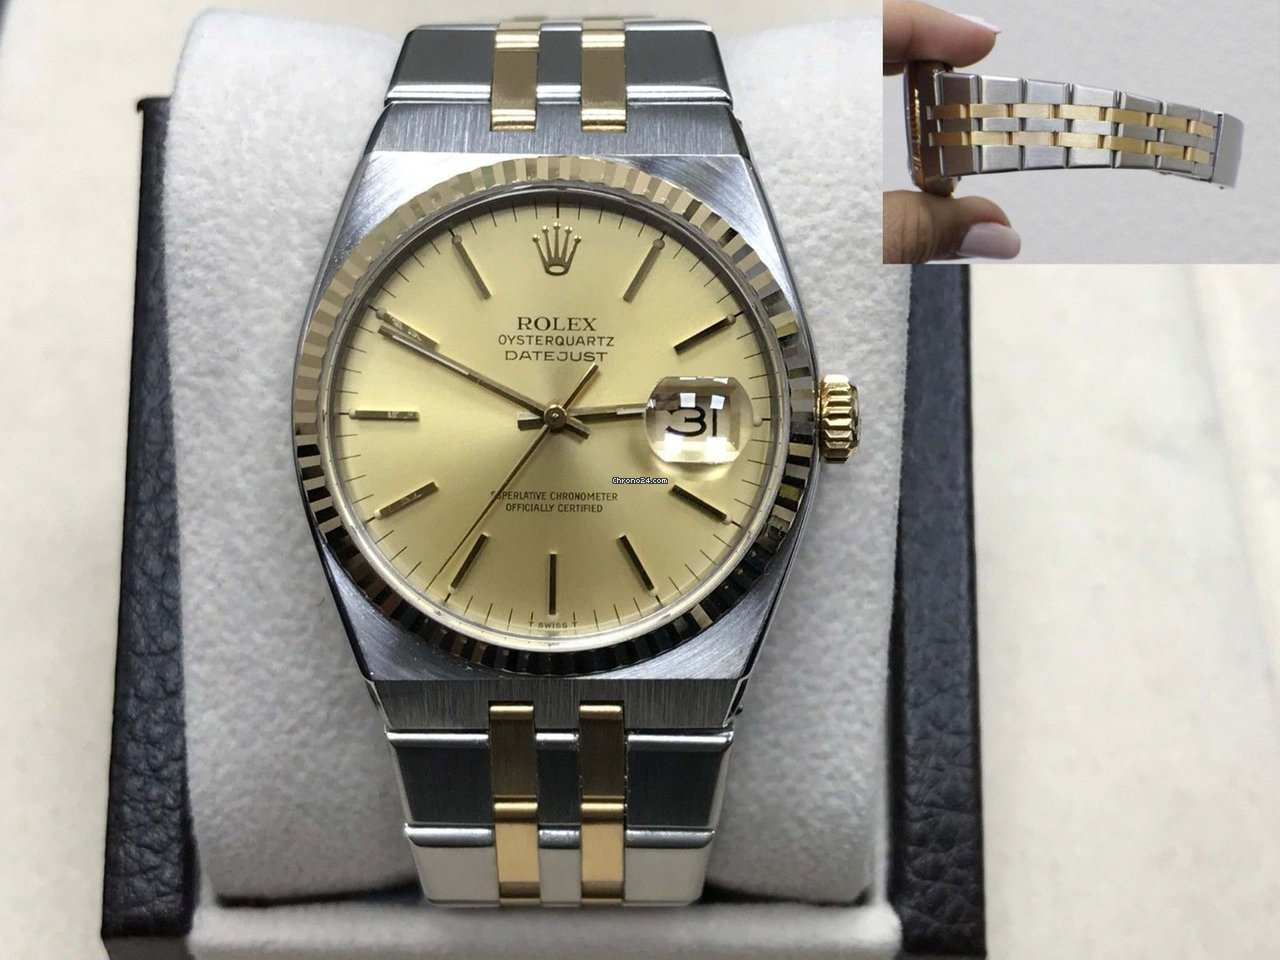 Rolex Oysterquartz 17013 Champagne Dial 18k Yellow Gold \u0026 Stainless Steel